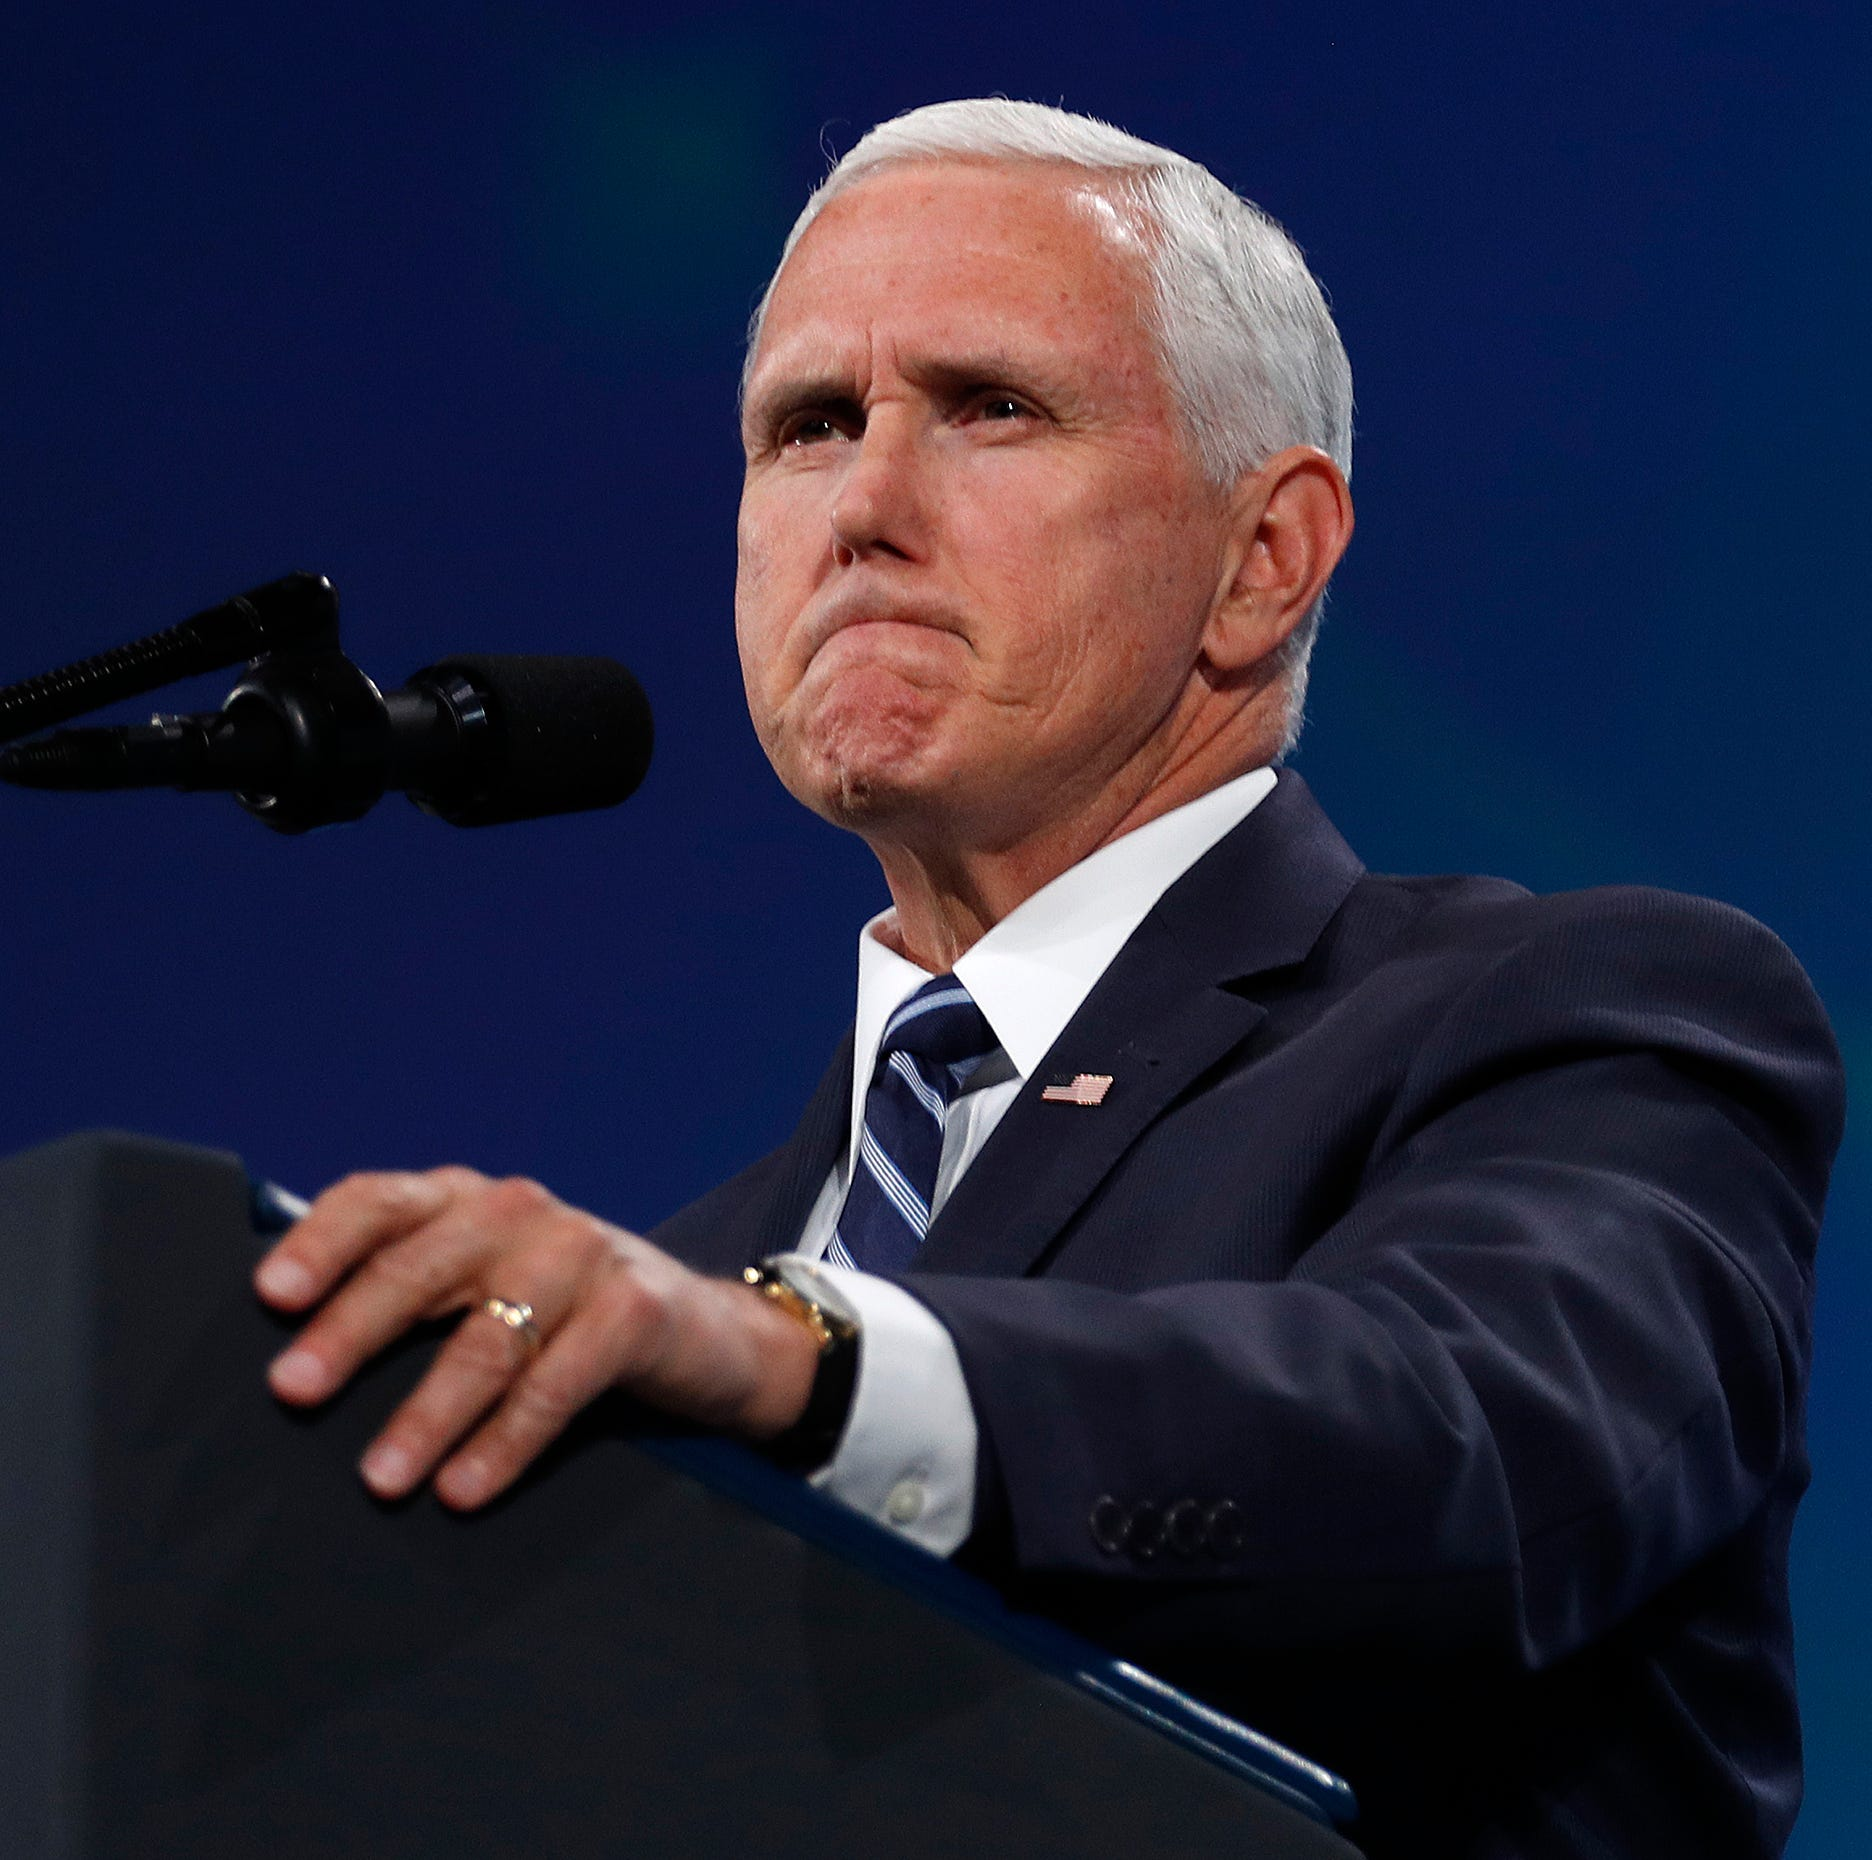 Vice President Mike Pence speaks to supporters at the NRA-ILA Leadership Forum at Lucas Oil Stadium on Friday, April 26, 2019.